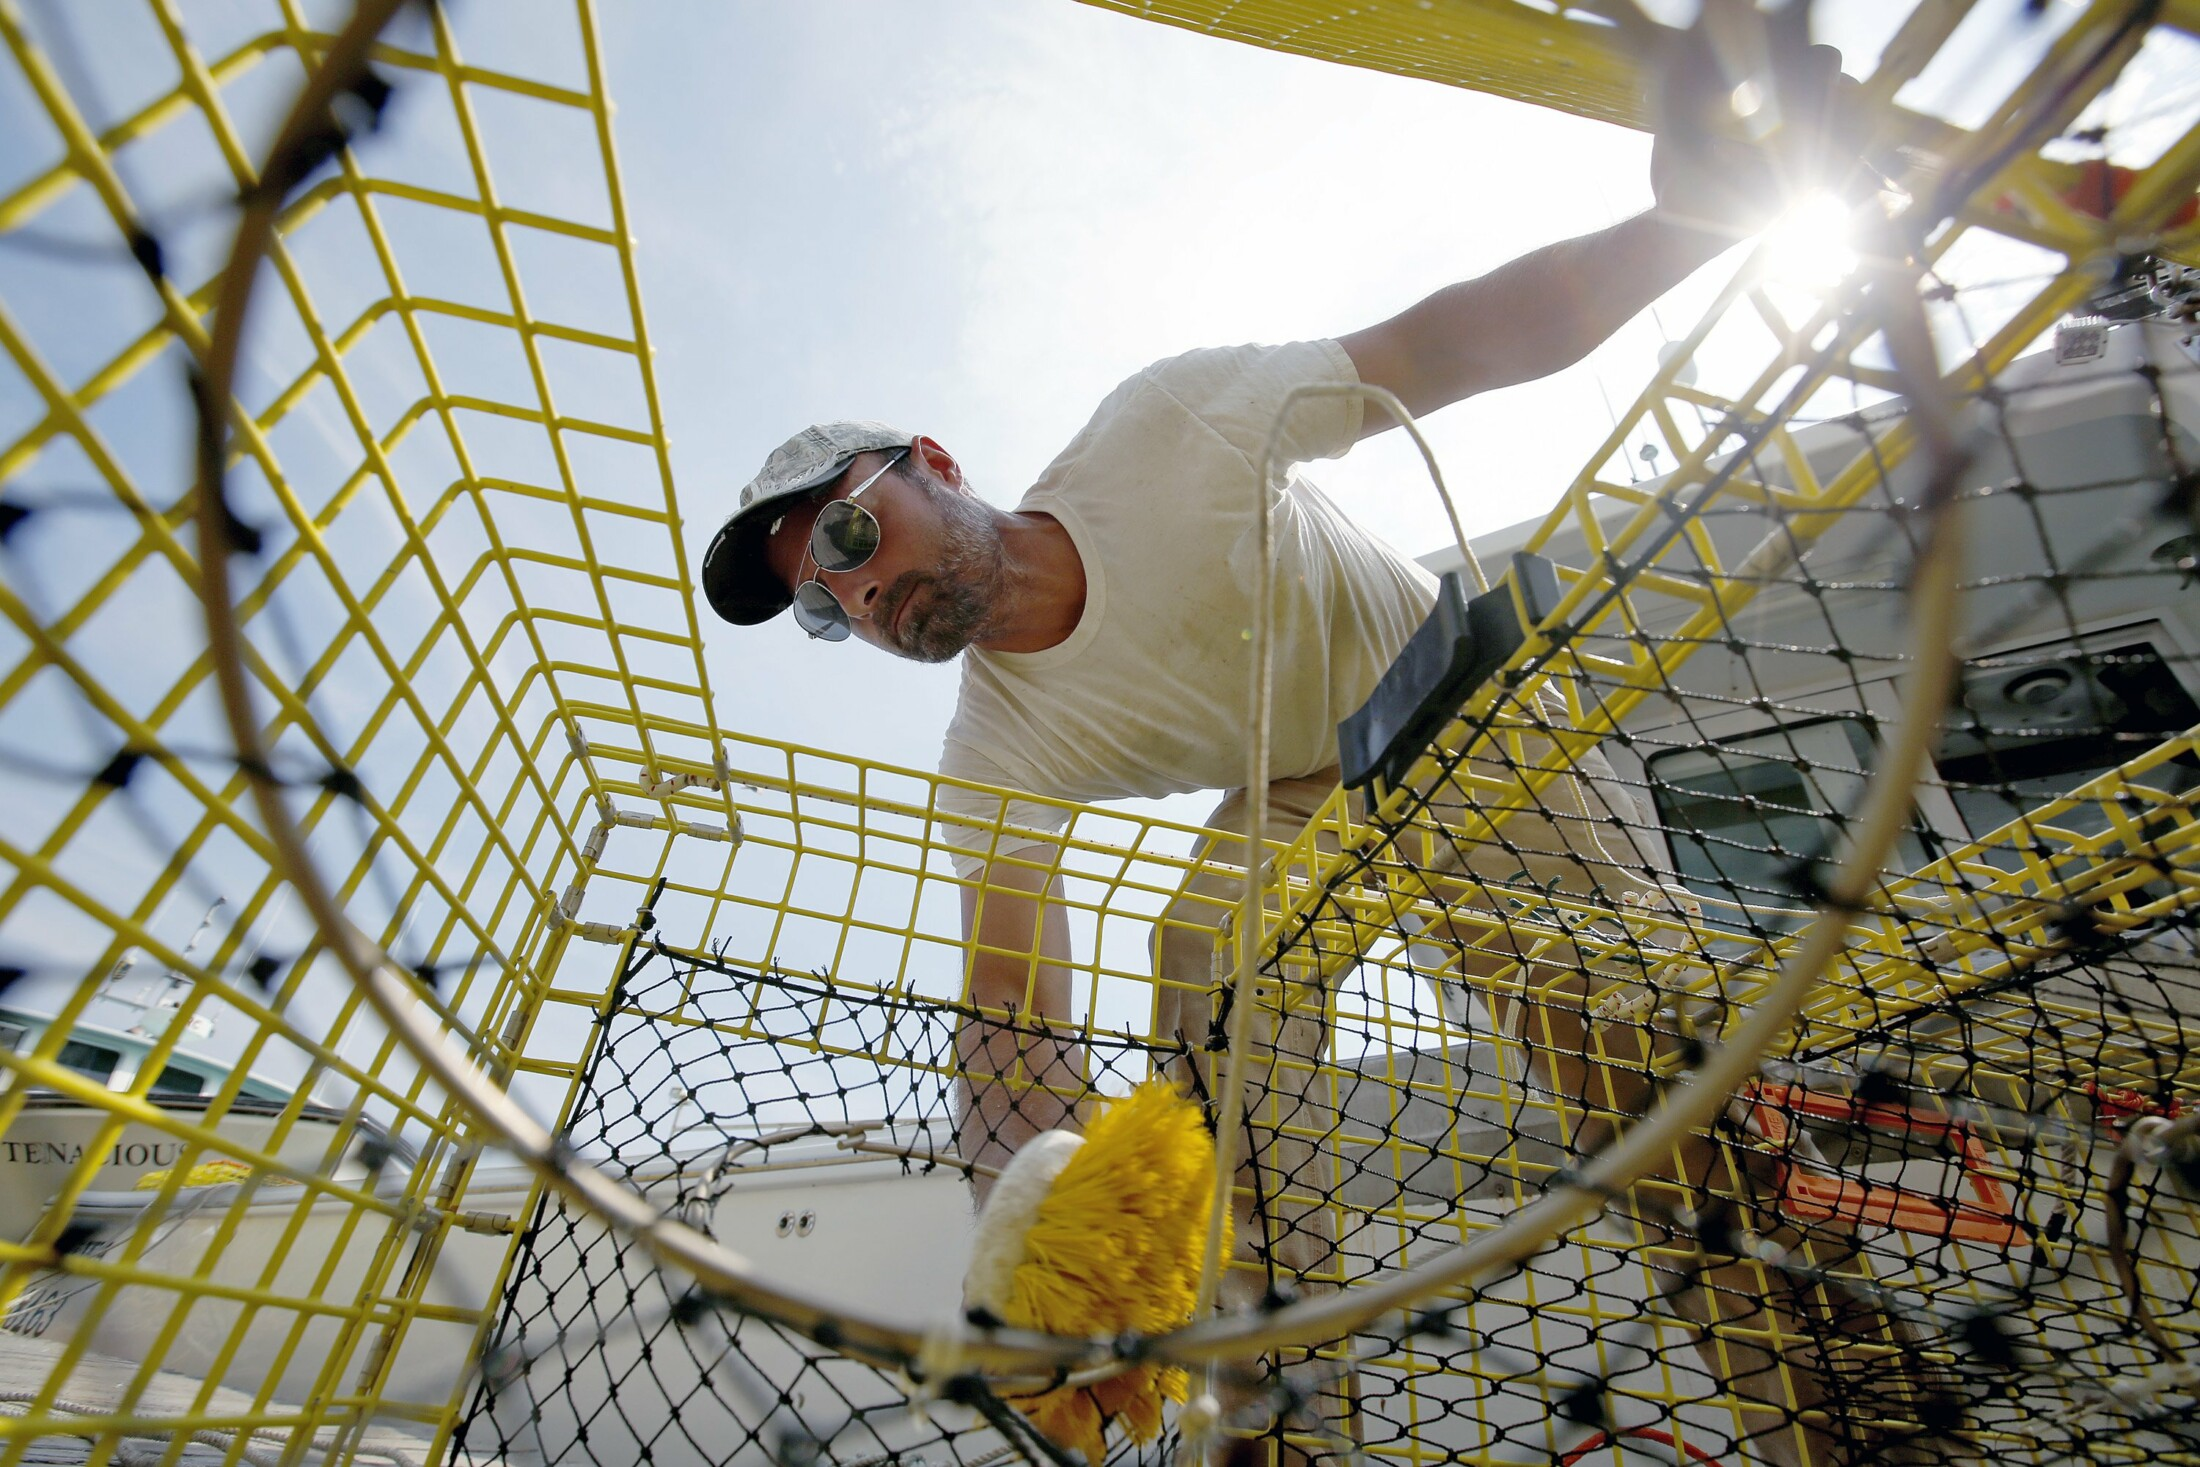 Joe Dyer, a sternman on the Jacalwa, cleans traps on Custom House Wharf in Portland. The Maine Department of Marine Resources has issued a plan intended to protect endangered right whales and the state's lobster industry that reduces vertical lobster lines. But the reductions are for lobstermen who fish beyond the 3-mile mark, which is a minority of the state's 5,000 licensed lobstermen.